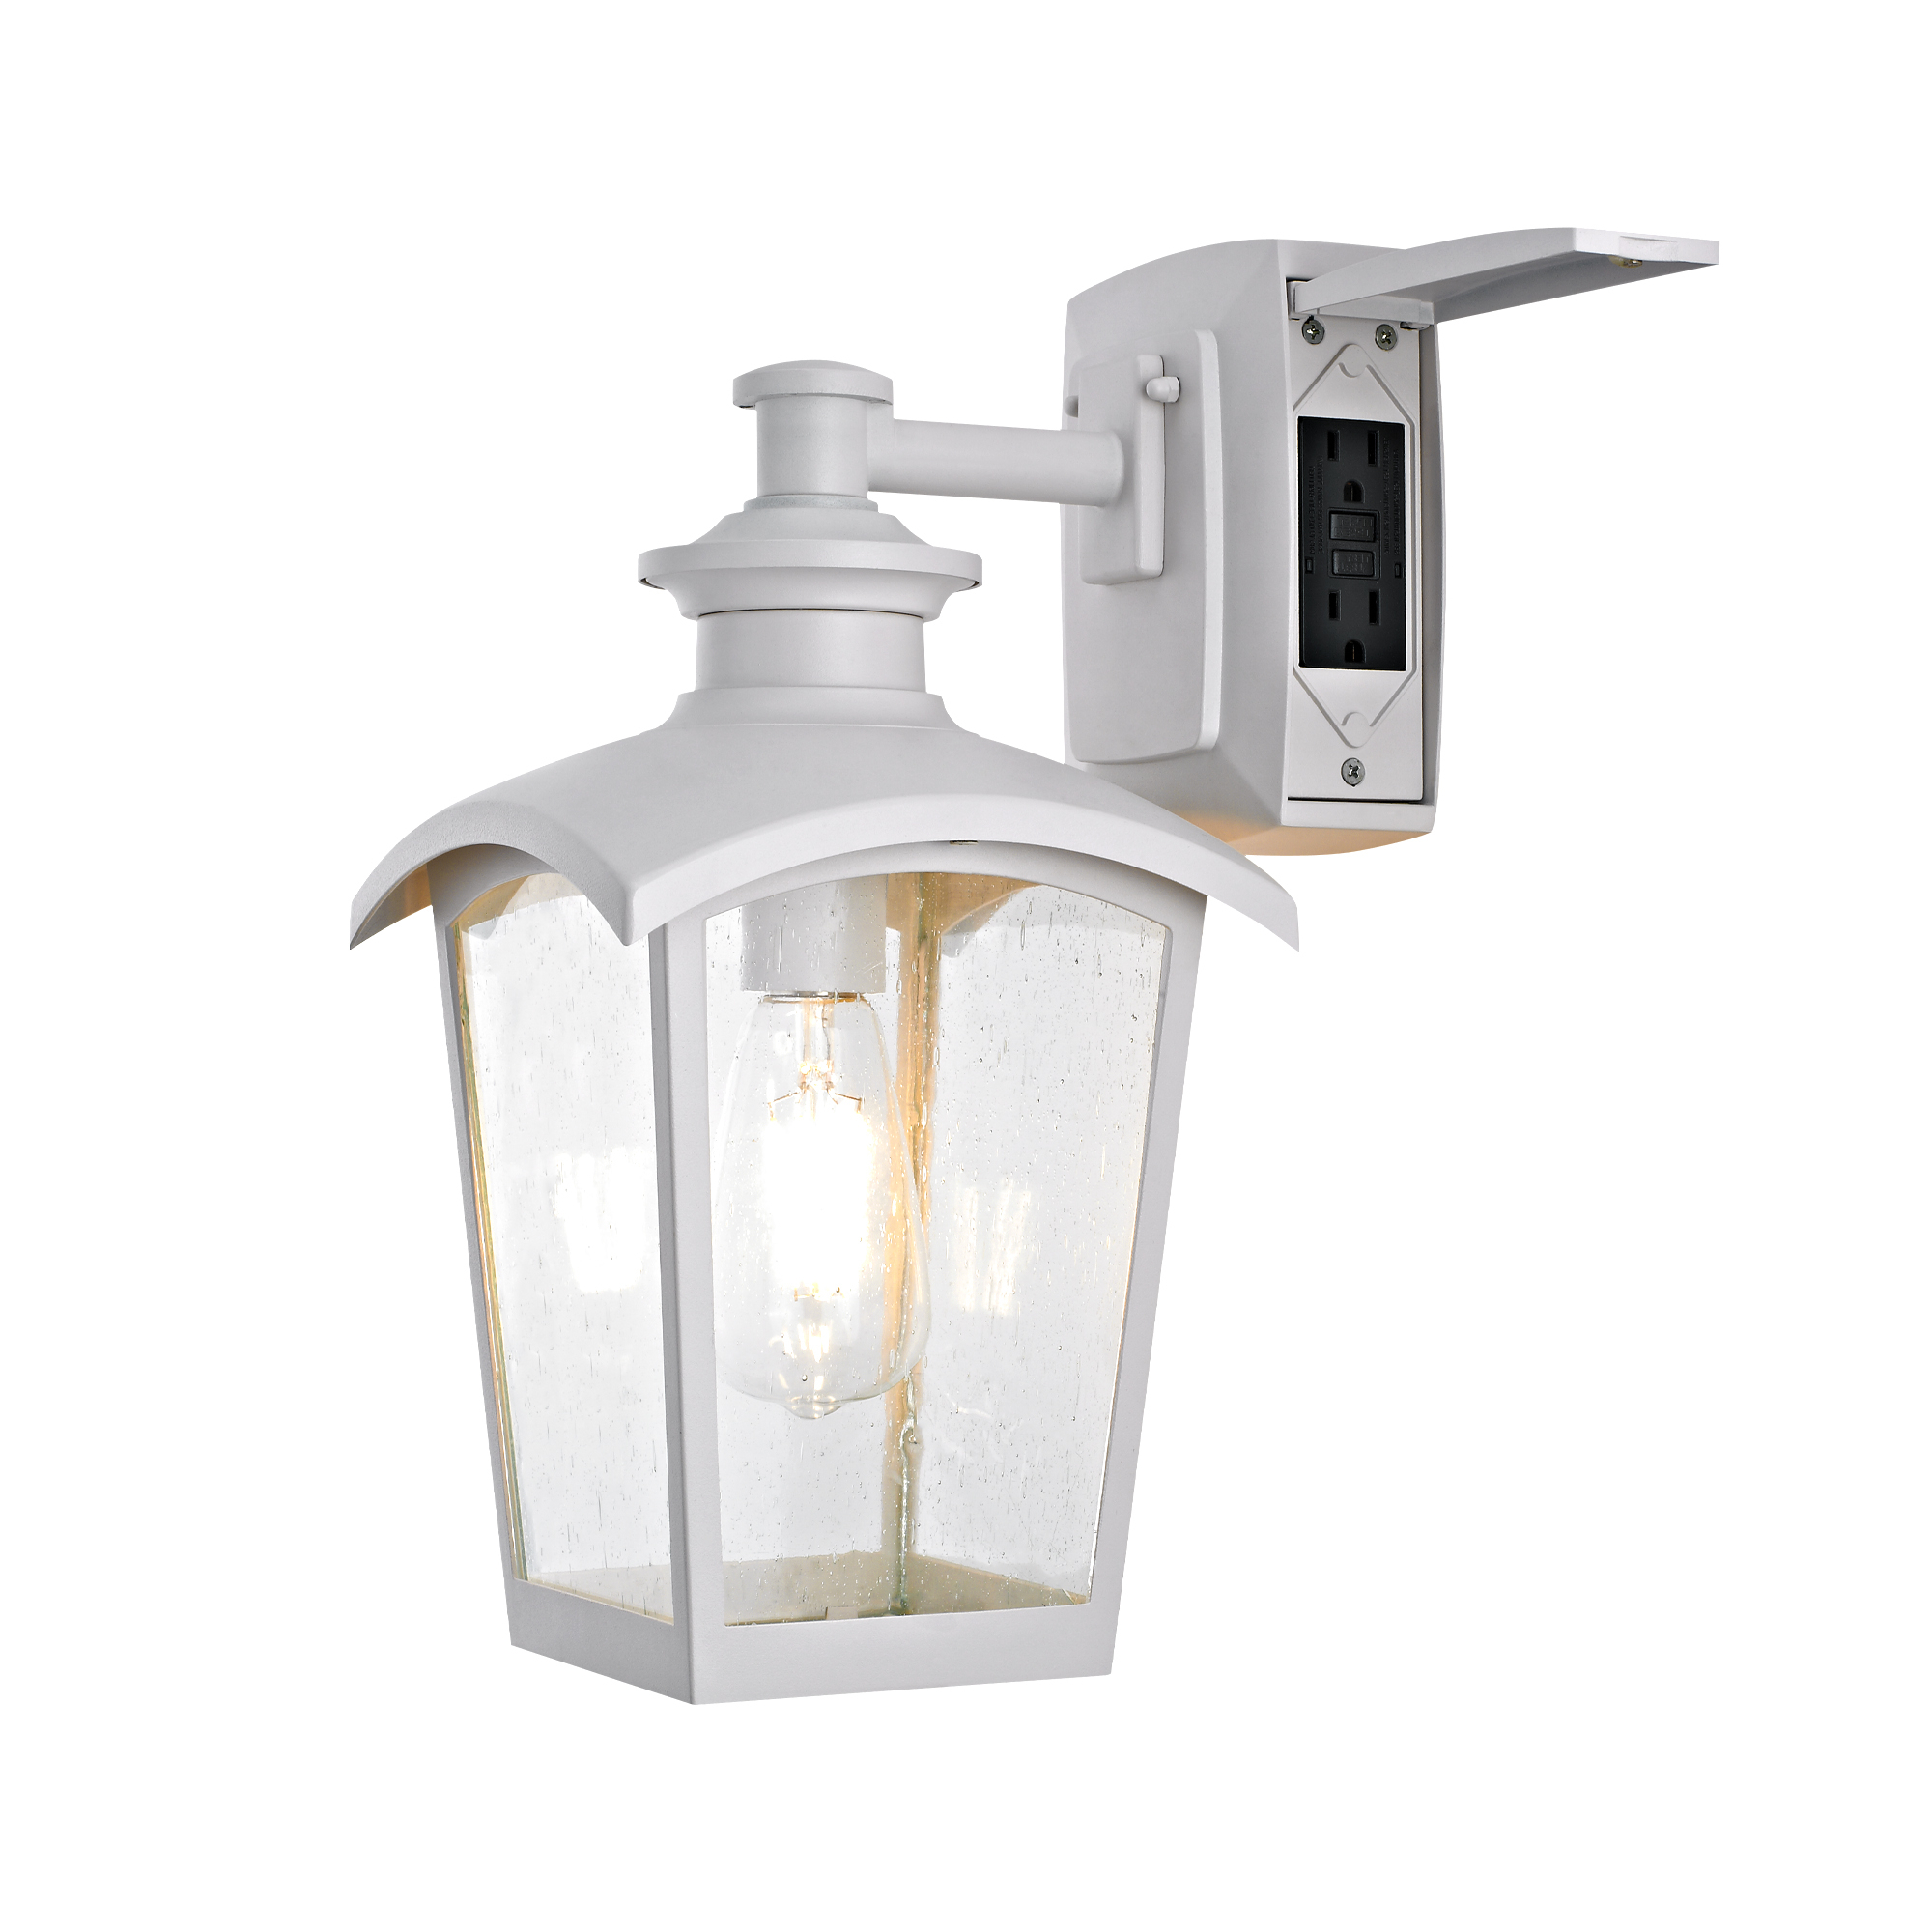 Home Luminaire Spence Collection 1 Light Outdoor Wall Intended For Preferred Payeur Hammered Glass Outdoor Wall Lanterns (View 4 of 20)